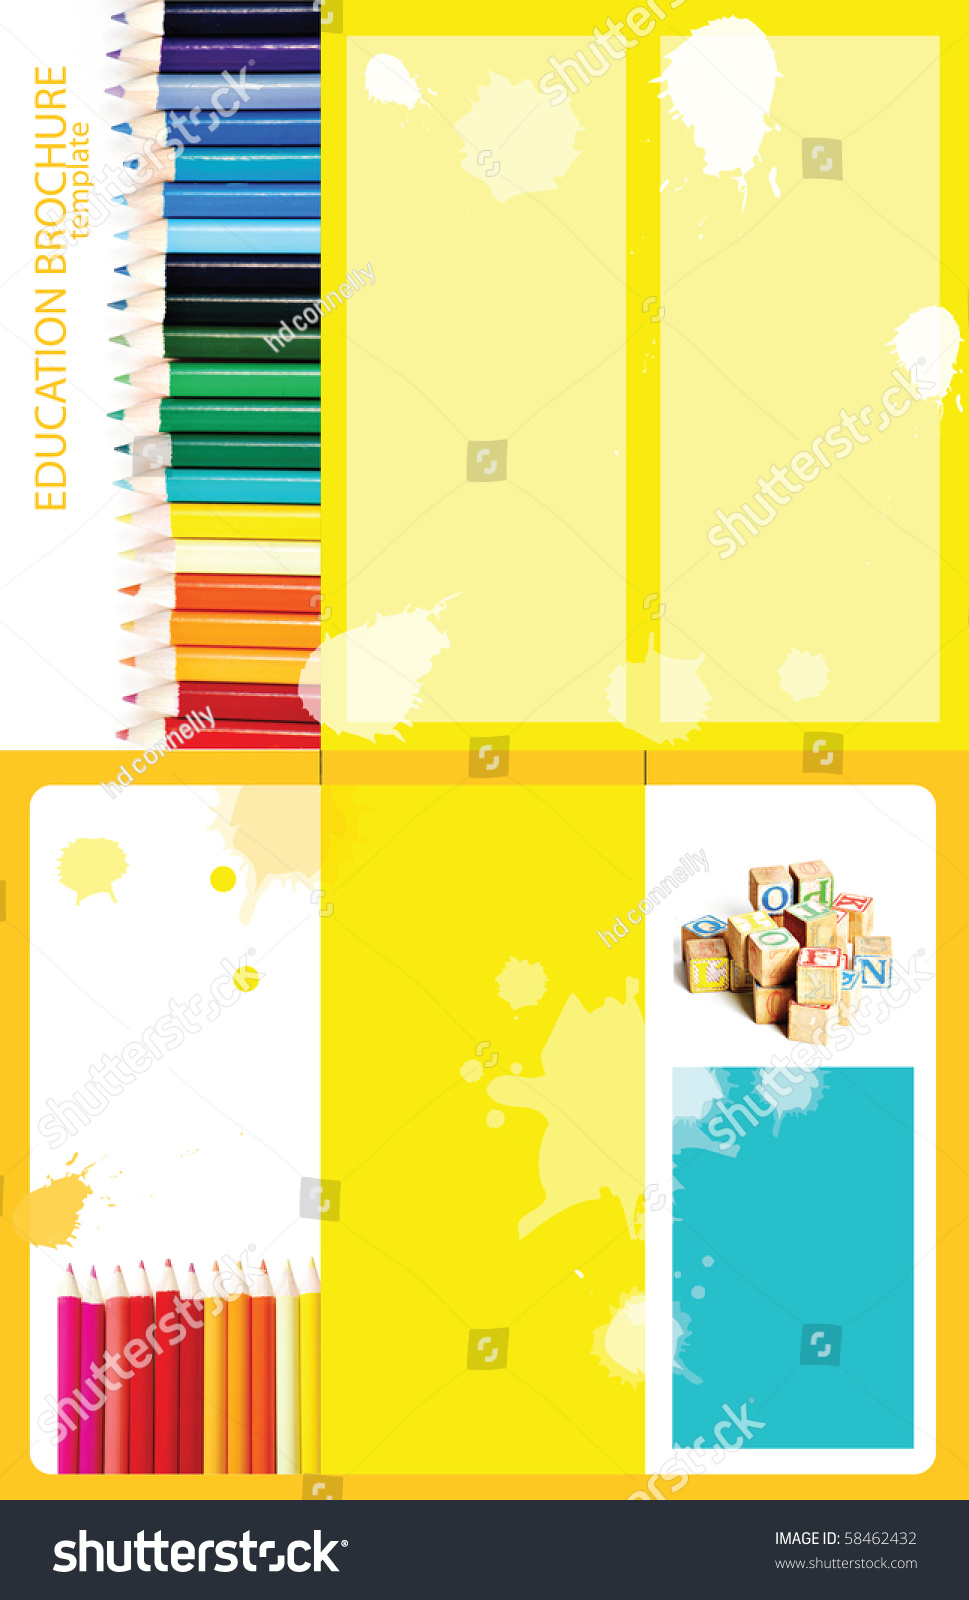 2 sided brochure templates - educational themed tri fold brochure template 2